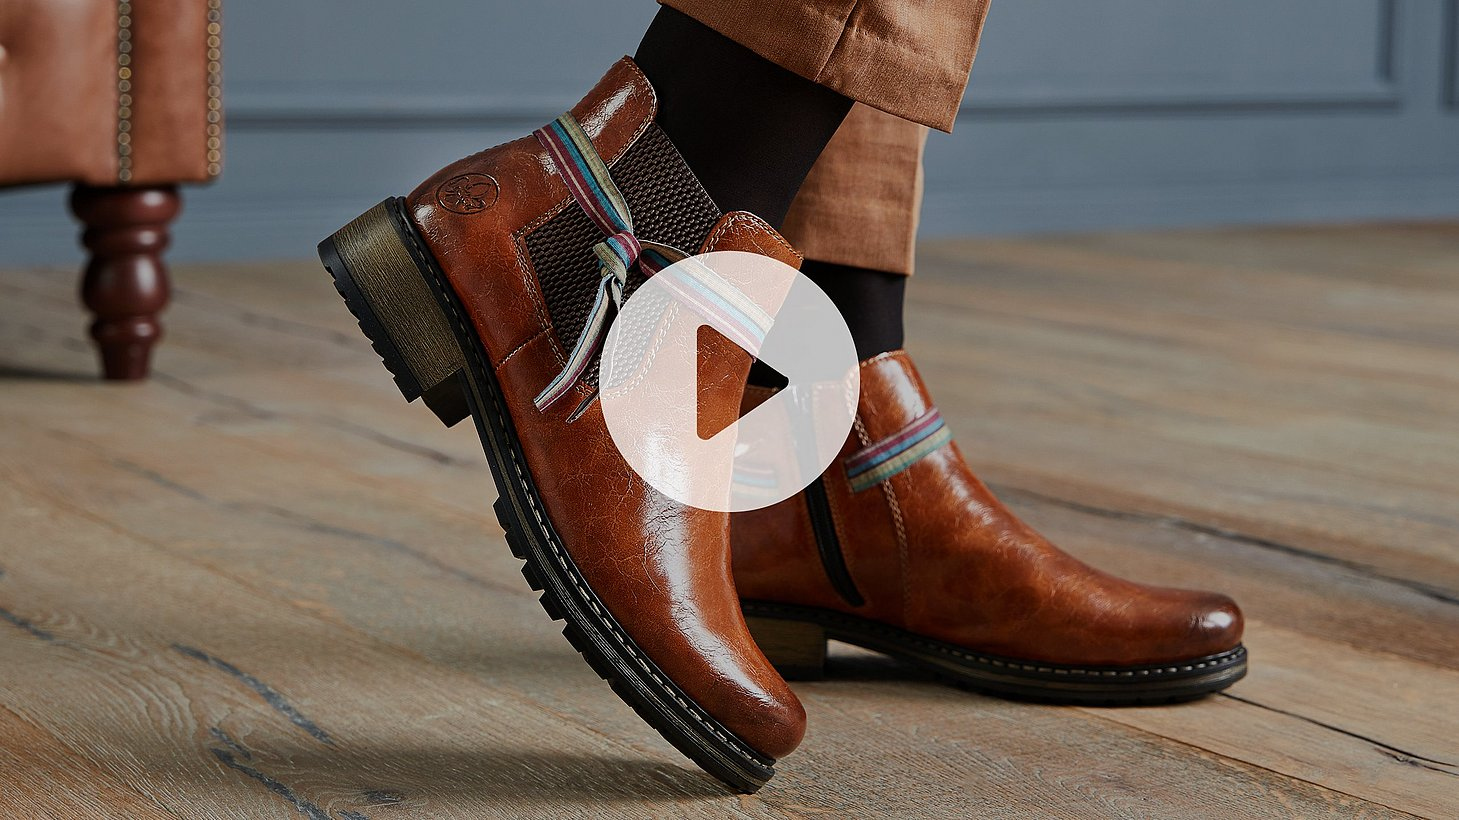 Watch a video about the features of rieker shoes